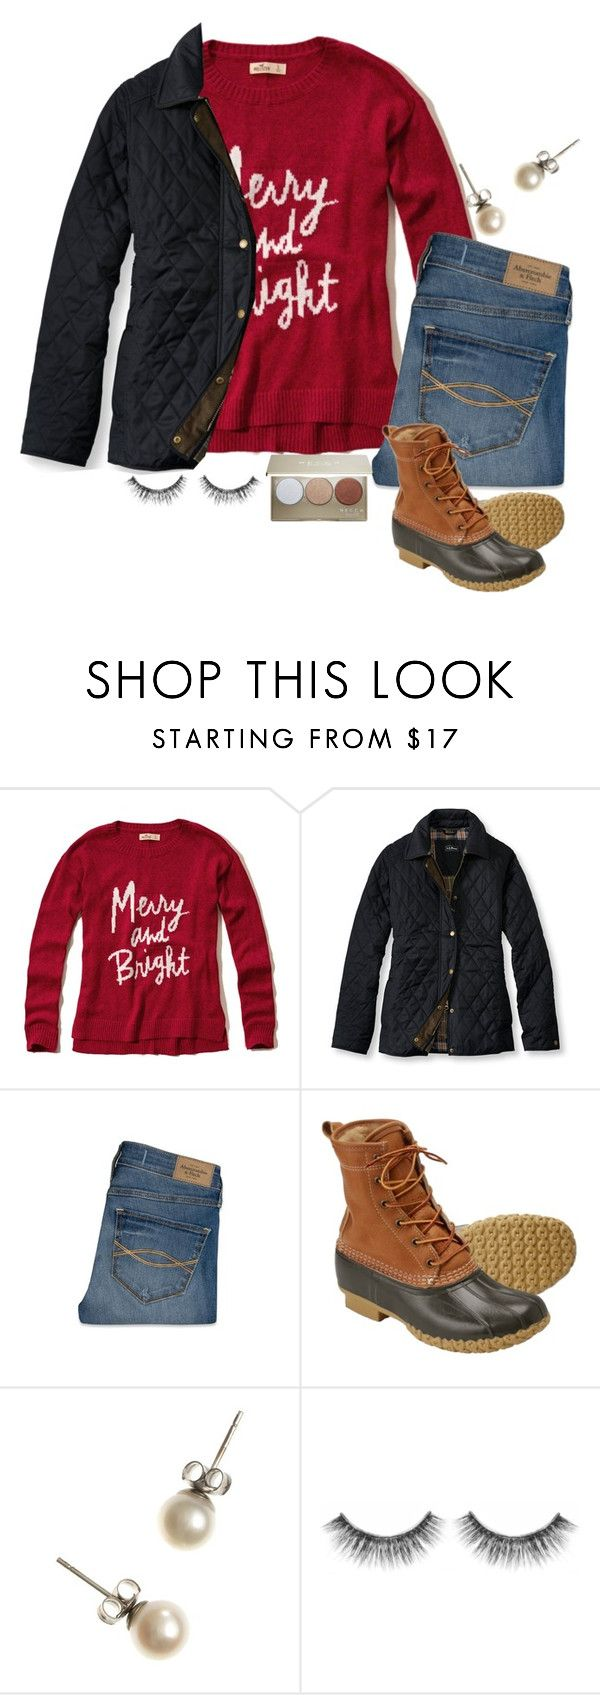 """""""Day Five #twelvedaysofchristmas2k15"""" by a-little-prep-in-your-step ❤ liked on Polyvore featuring Hollister Co., L.L.Bean, Abercrombie & Fitch, J.Crew, Sephora Collection, Becca and twelvedaysofchristmas2k15"""